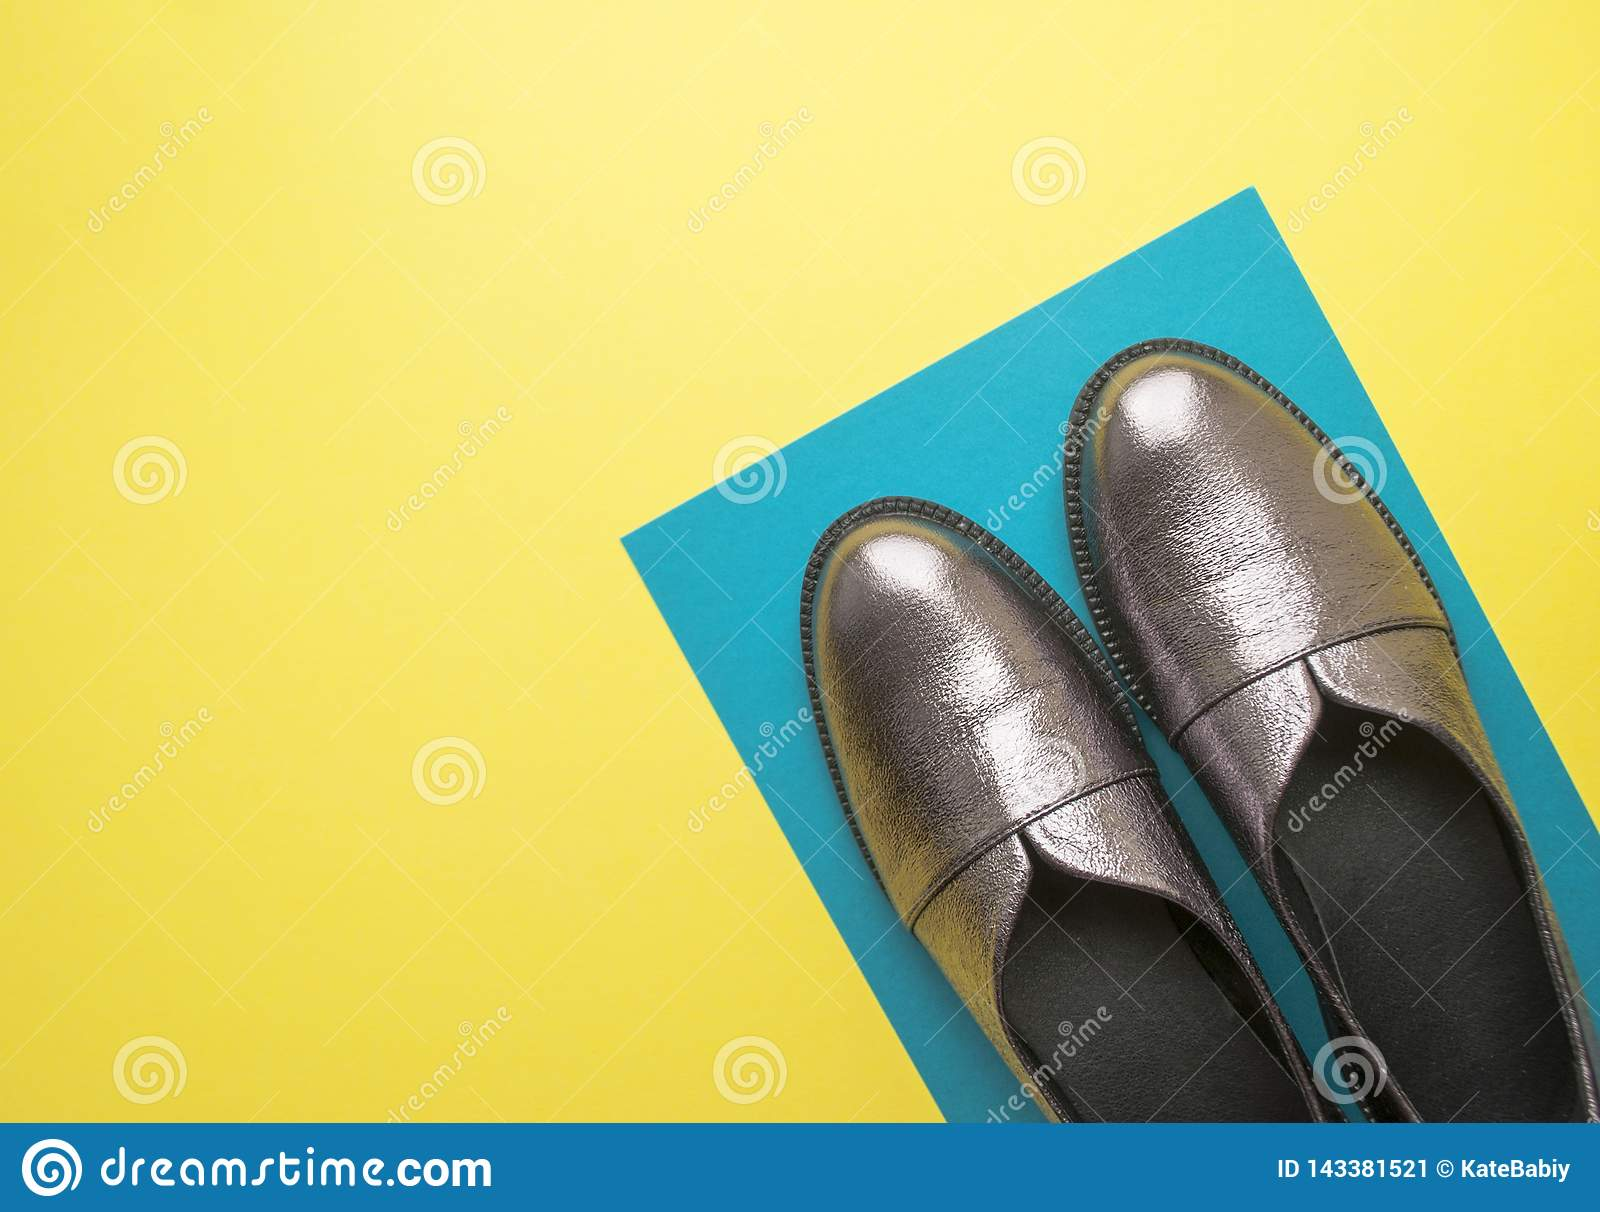 Pair of female shoes on yellow background